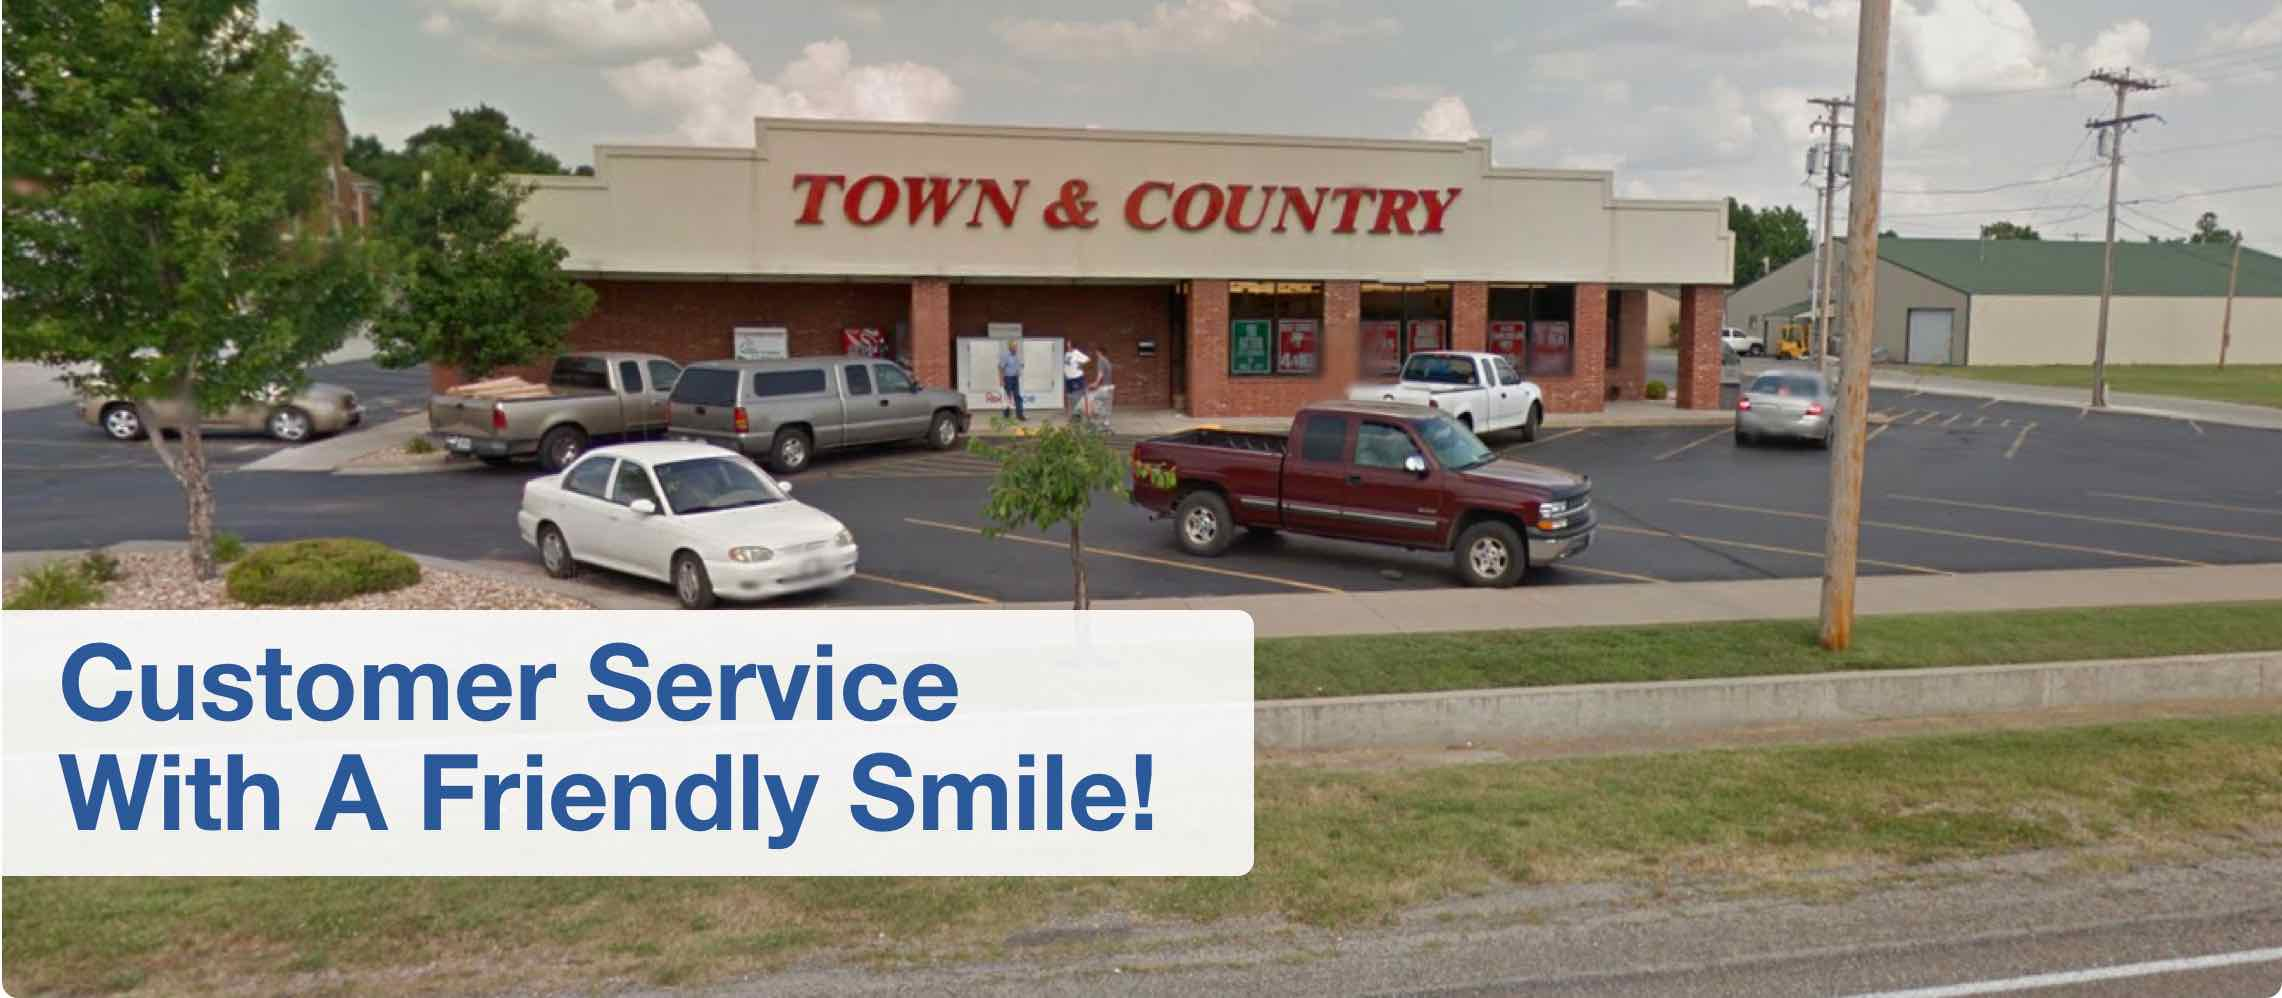 Customer service with a friendly smile!